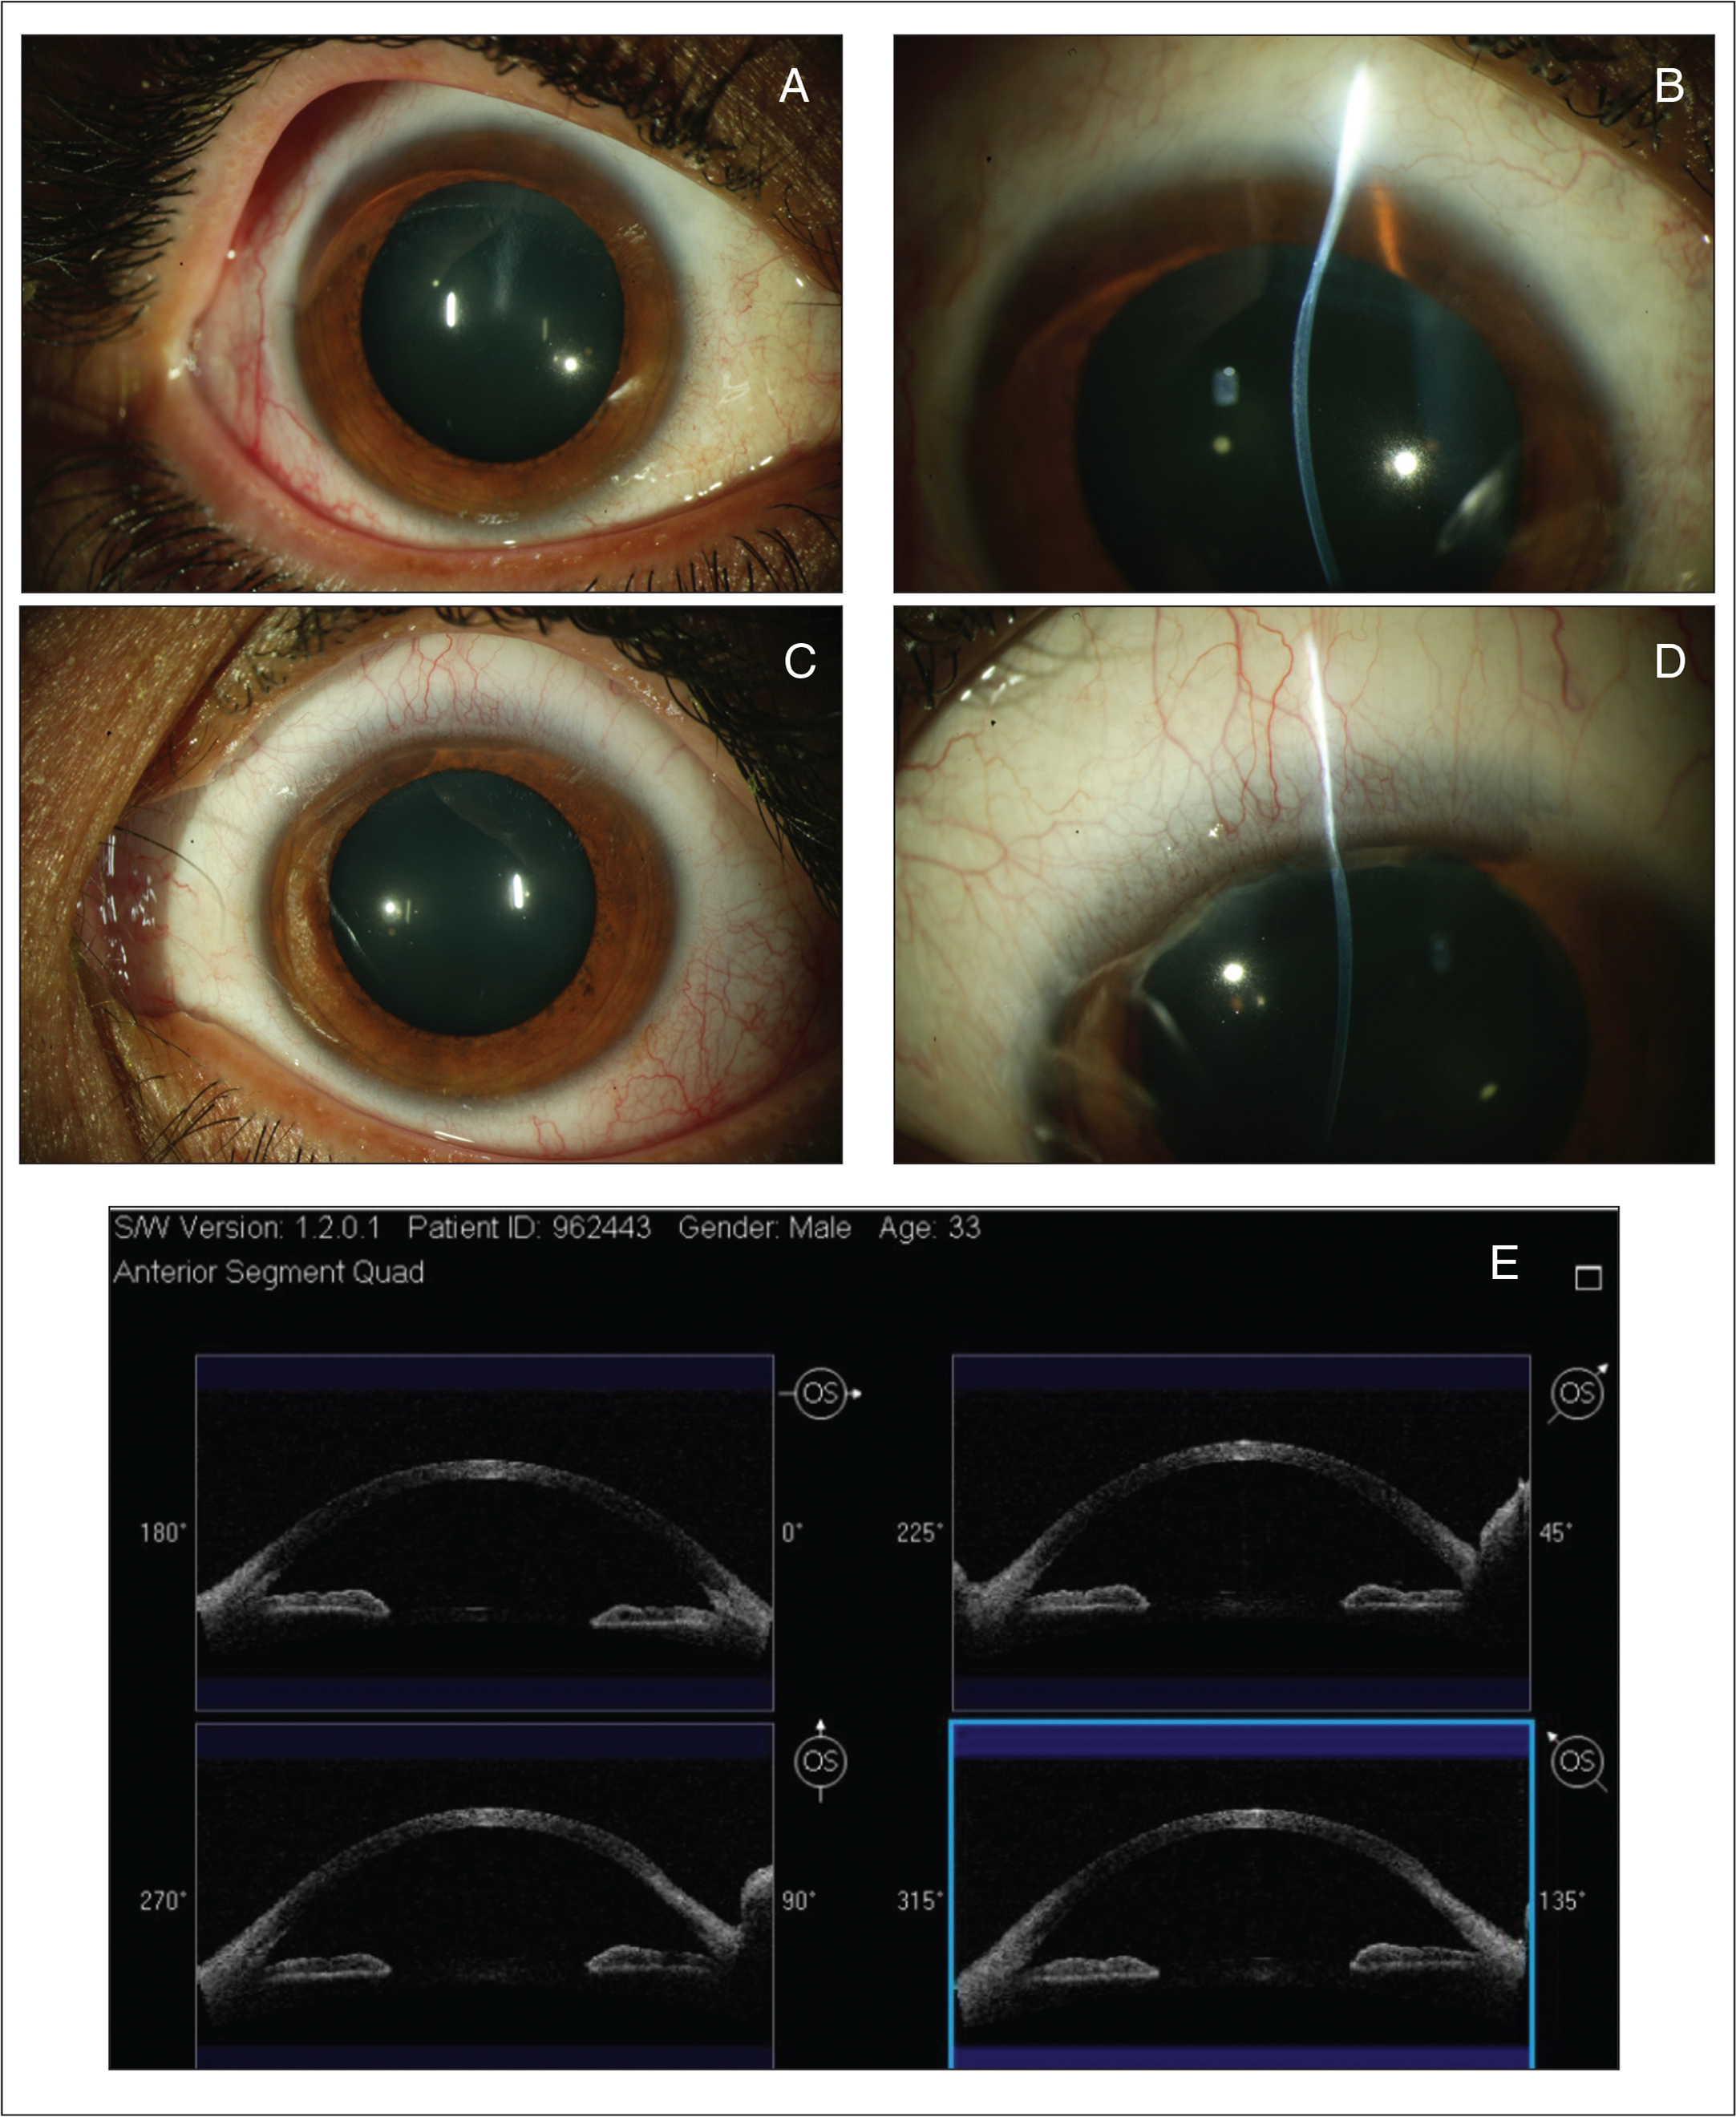 (A–B) Slit-lamp images showing a stabilization of the disease in the right eye 4 years after treatment with corneal cross-linking. However, (C–D) the left eye presented with an increase in the superior corneal thinning, confirmed by (E) the anterior segment optical coherence tomography images.